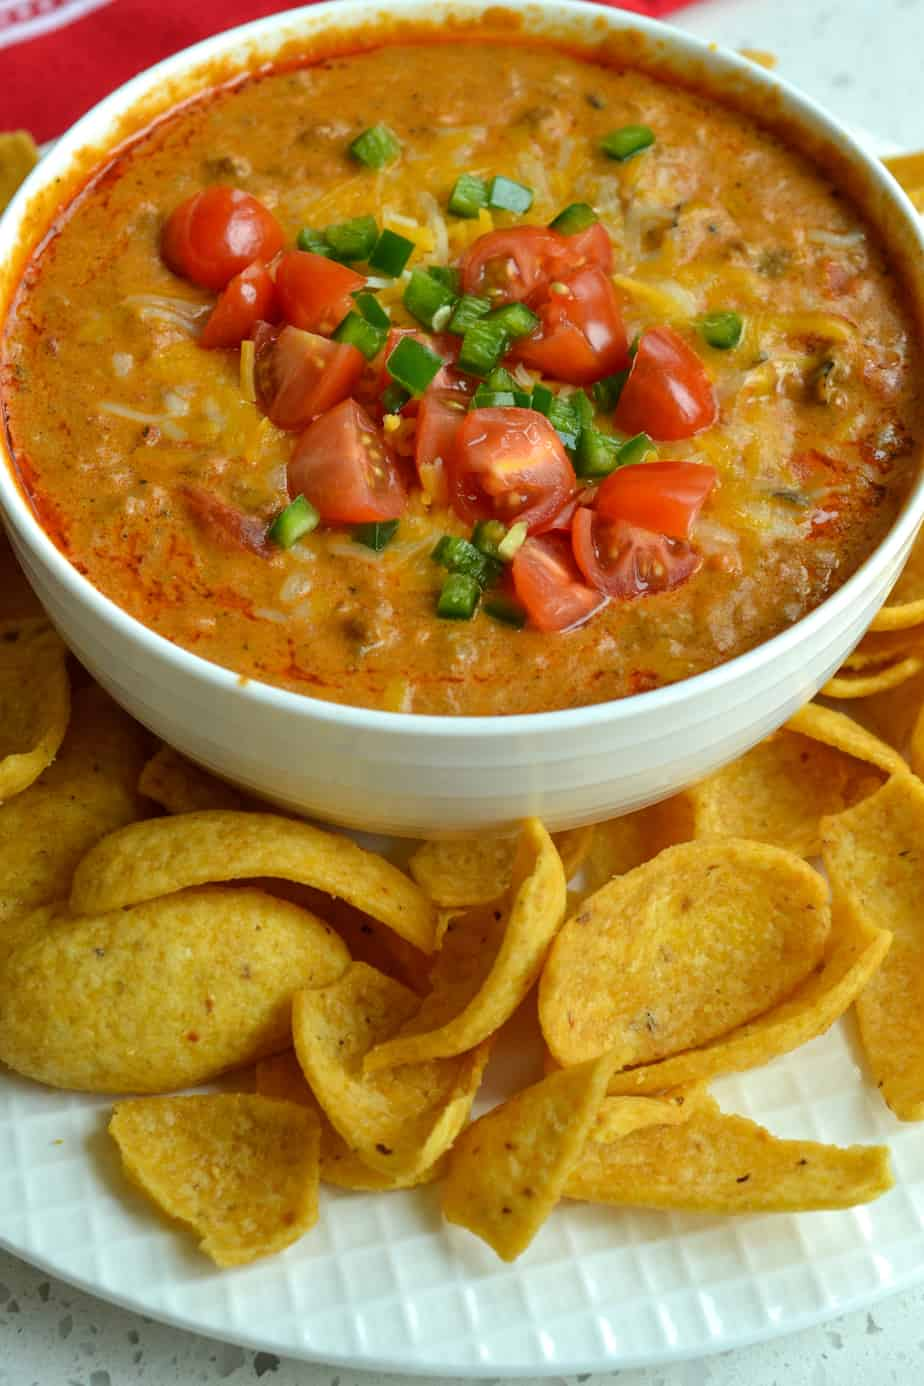 Chili Cheese Dip takes less than 15 minutes to make and it is always a game day hit with friends and family.